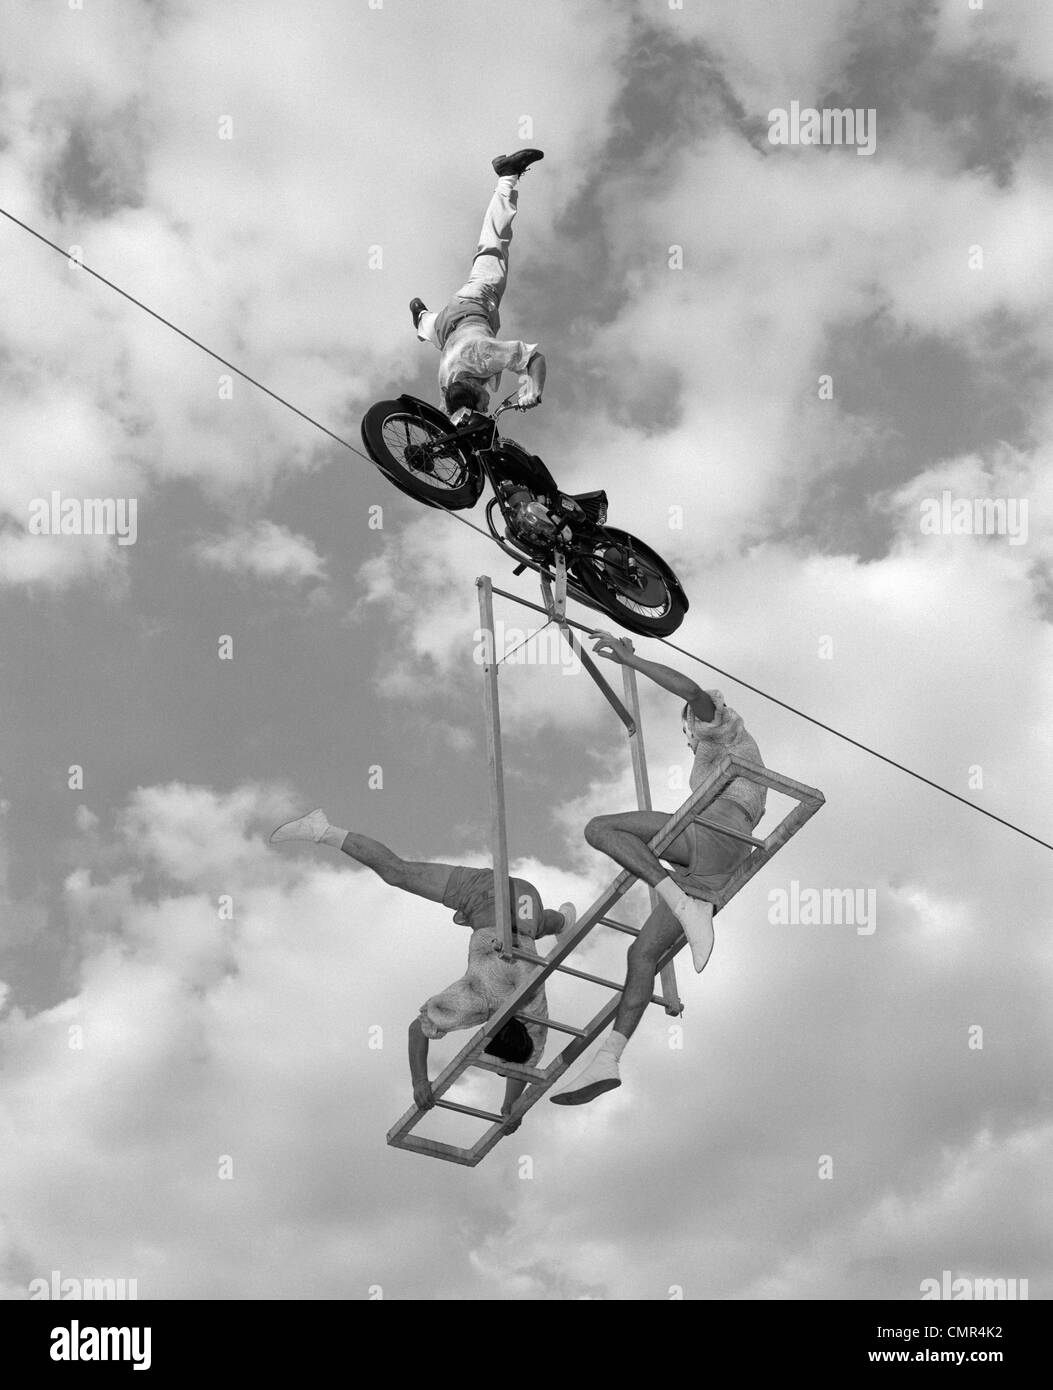 1950s 1960s HIGH-WIRE ACT WITH MAN STANDING ON HIS HEAD ON MOTORCYCLE WITH MAN AND WOMAN ON BALANCED LADDER SUSPENDED - Stock Image